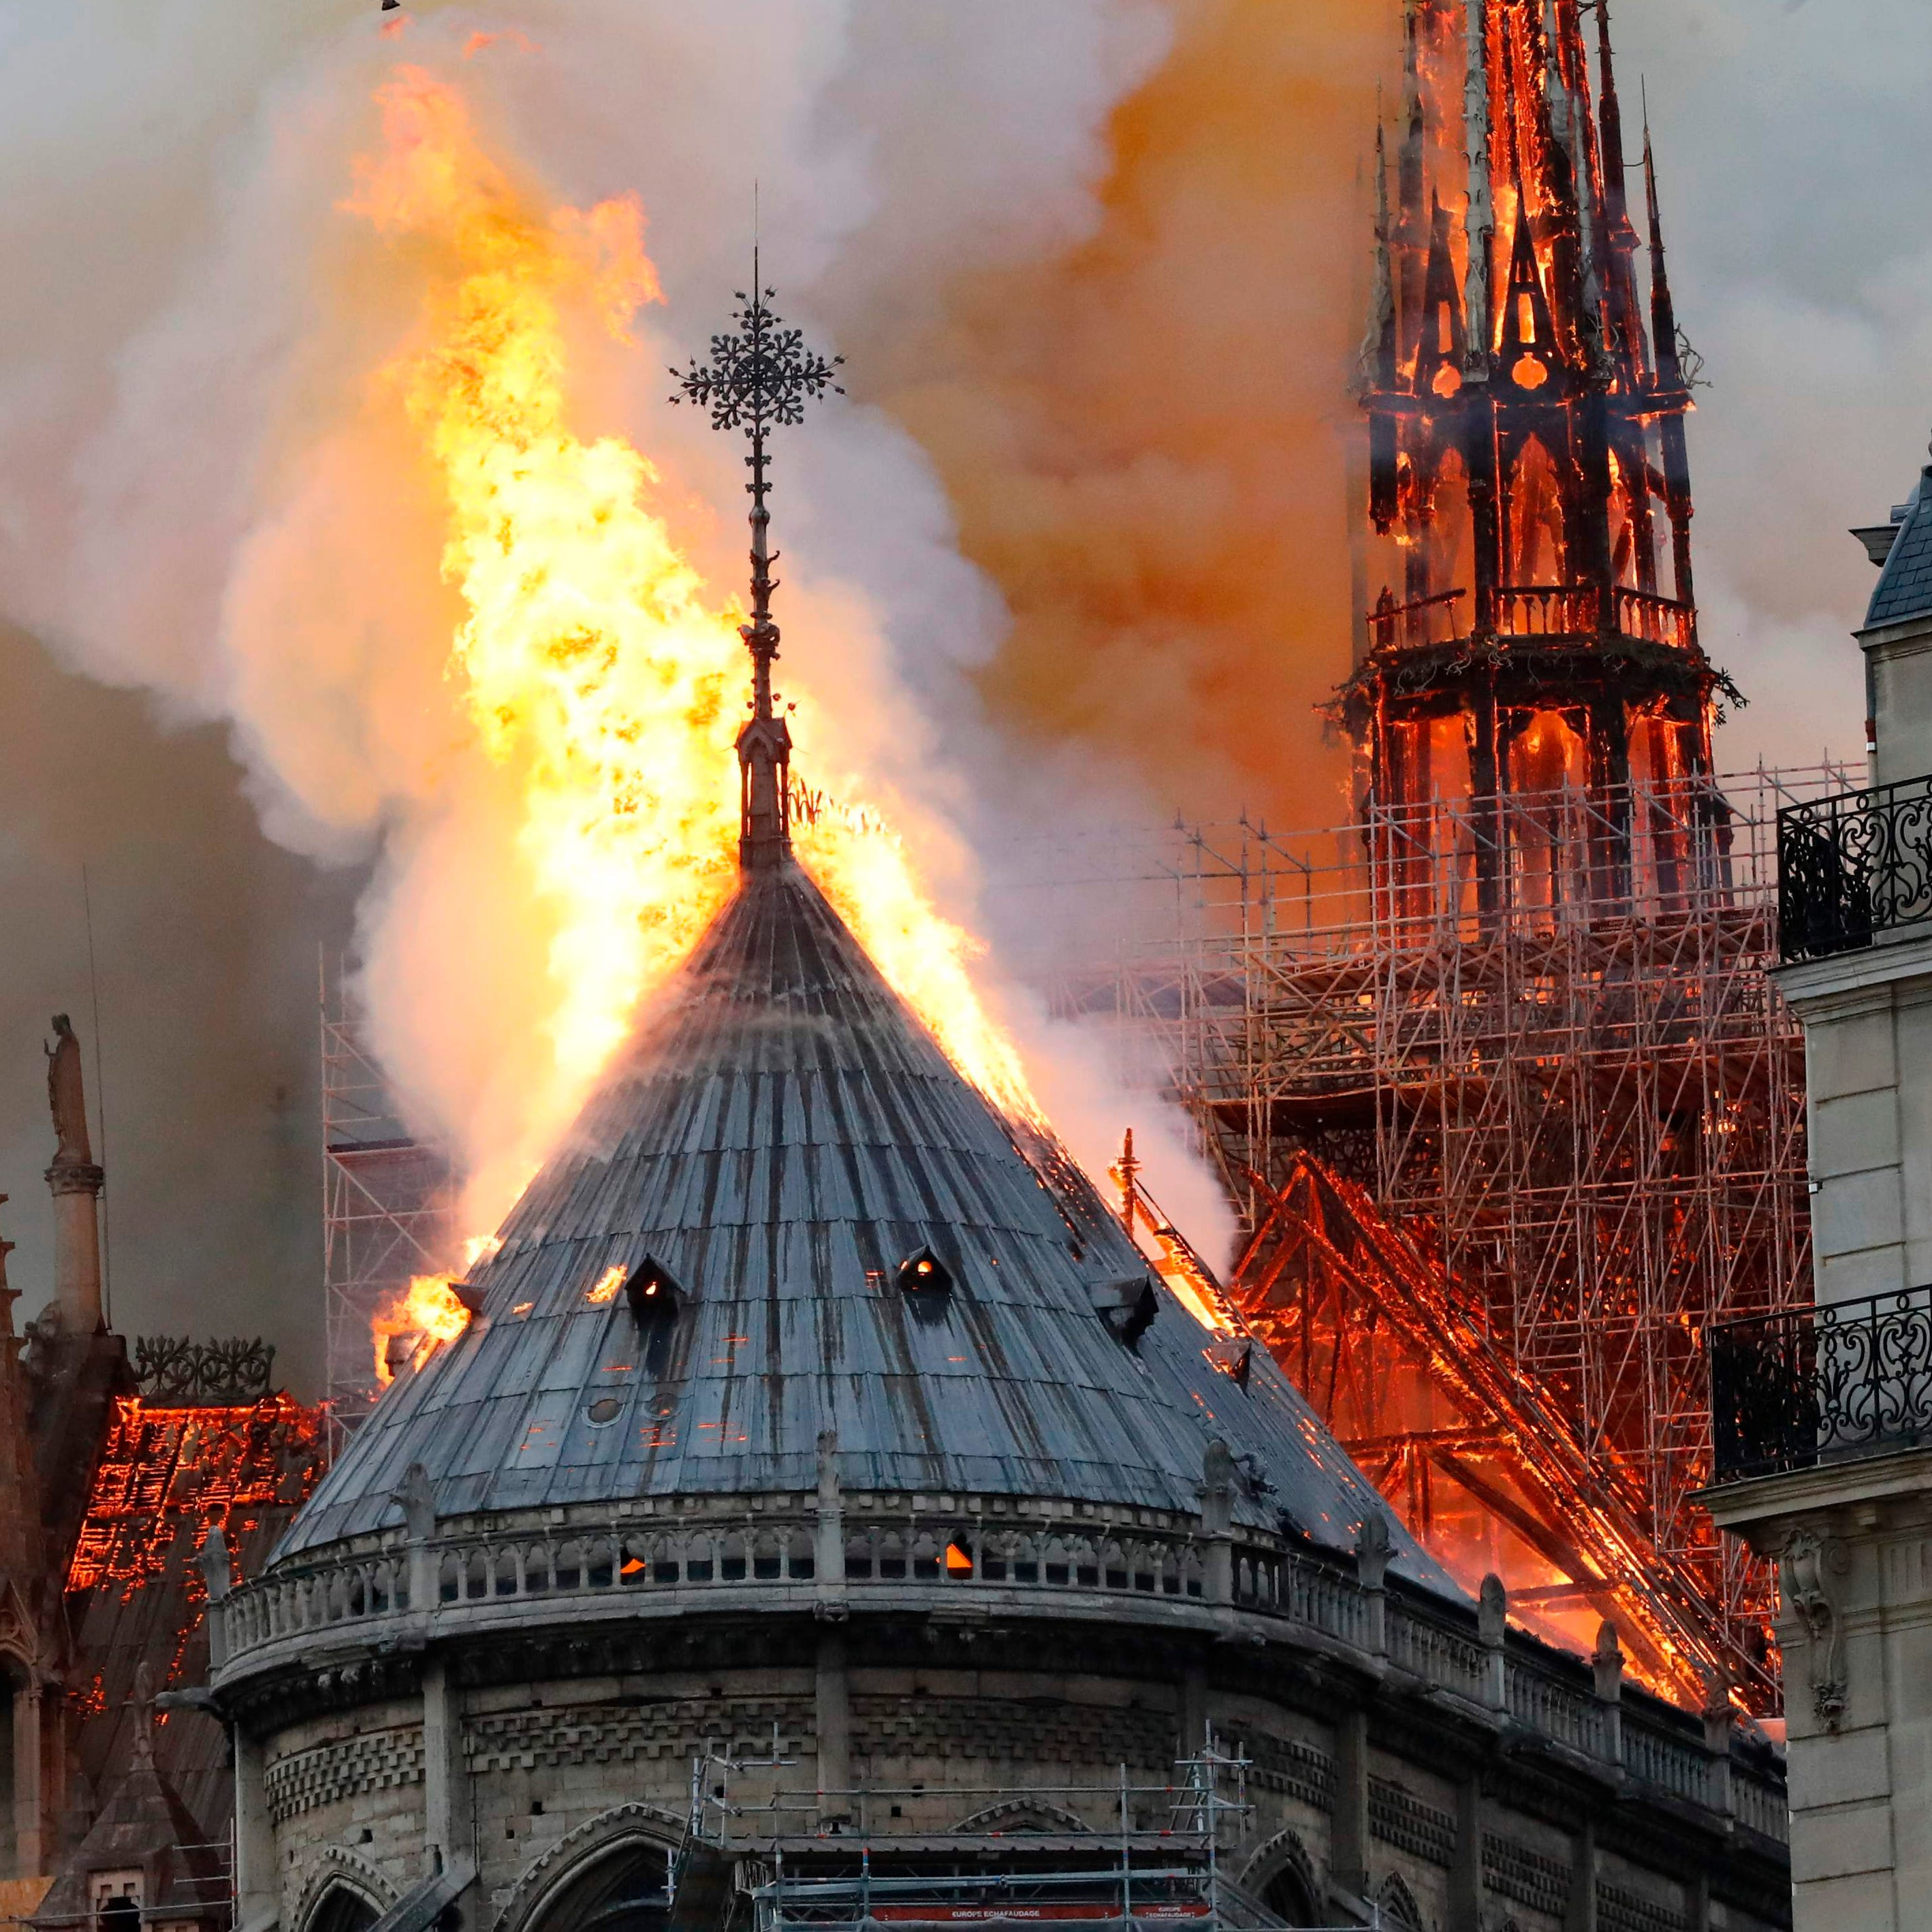 Fire breaks out at top of Notre Dame Cathedral in Paris